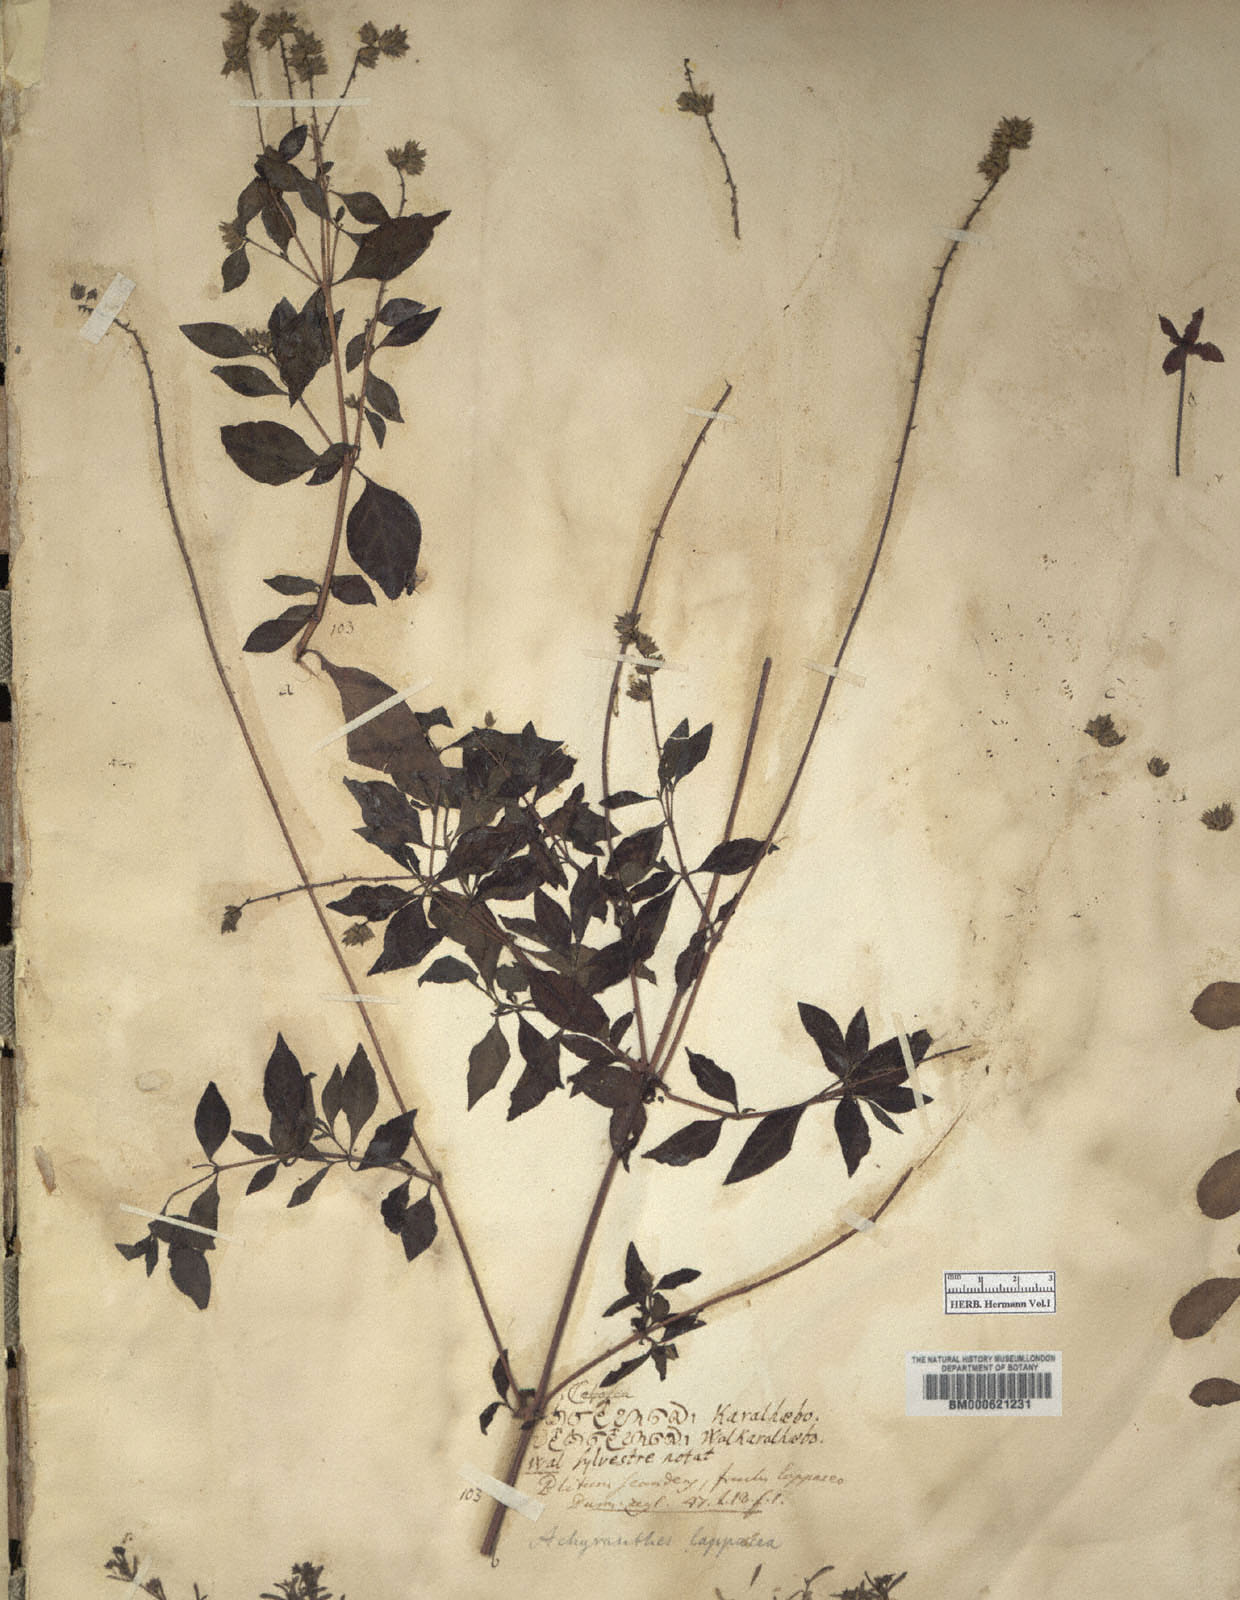 https://www.nhm.ac.uk//resources/research-curation/projects/hermann-herbarium/lgimages/BM000621231.JPG